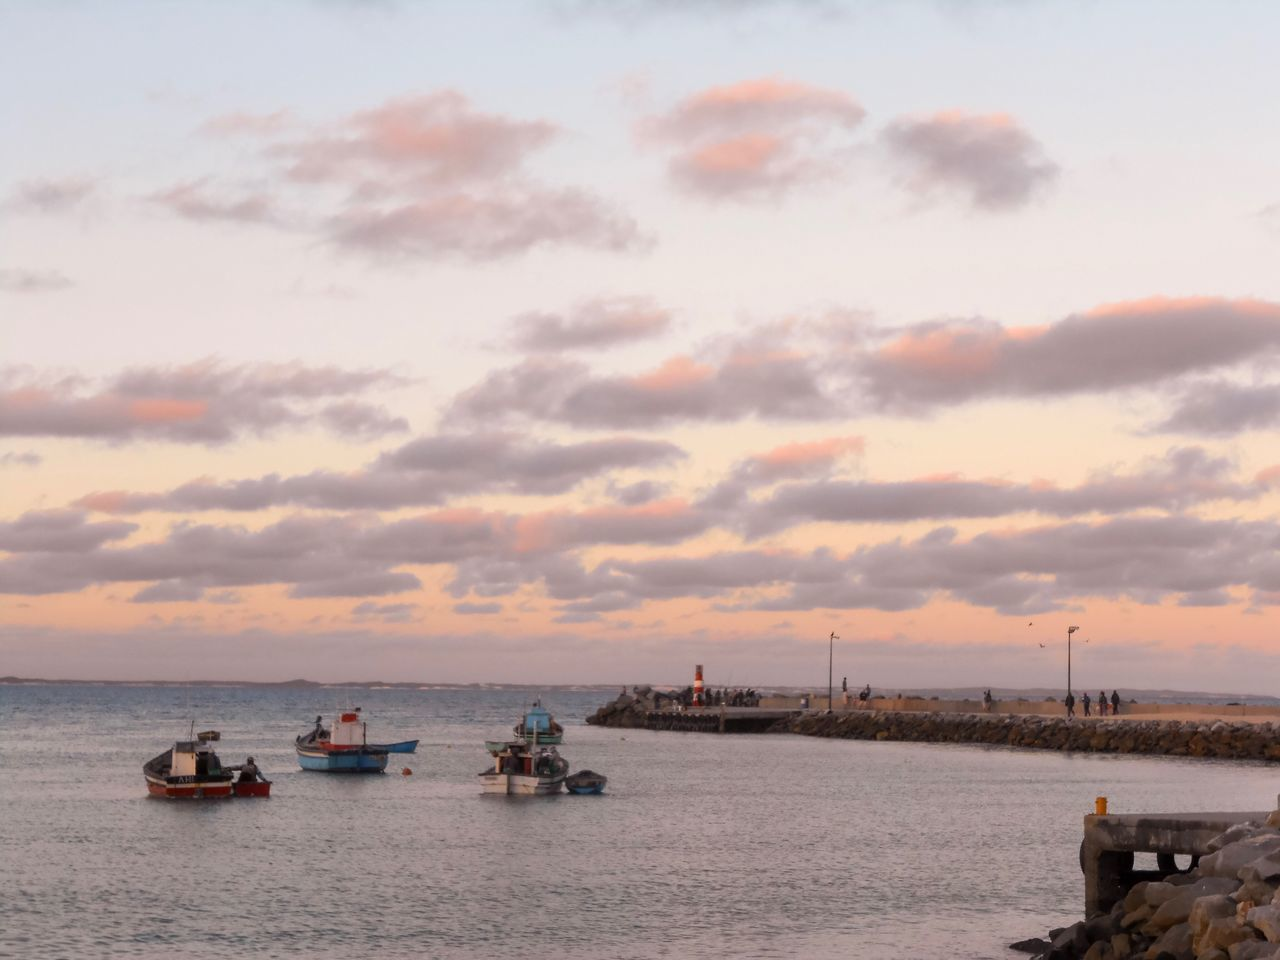 Struisbaai, South Africa Garden Route, South Africa South Africa Sky Sunset African Skies Nature Horizon Over Water Beauty In Nature EyeEm Nature Lover EyeEm Best Shots EyeEm Best Shots - Sunsets + Sunrise A chilled evening in Struis Baai Sommergefühle